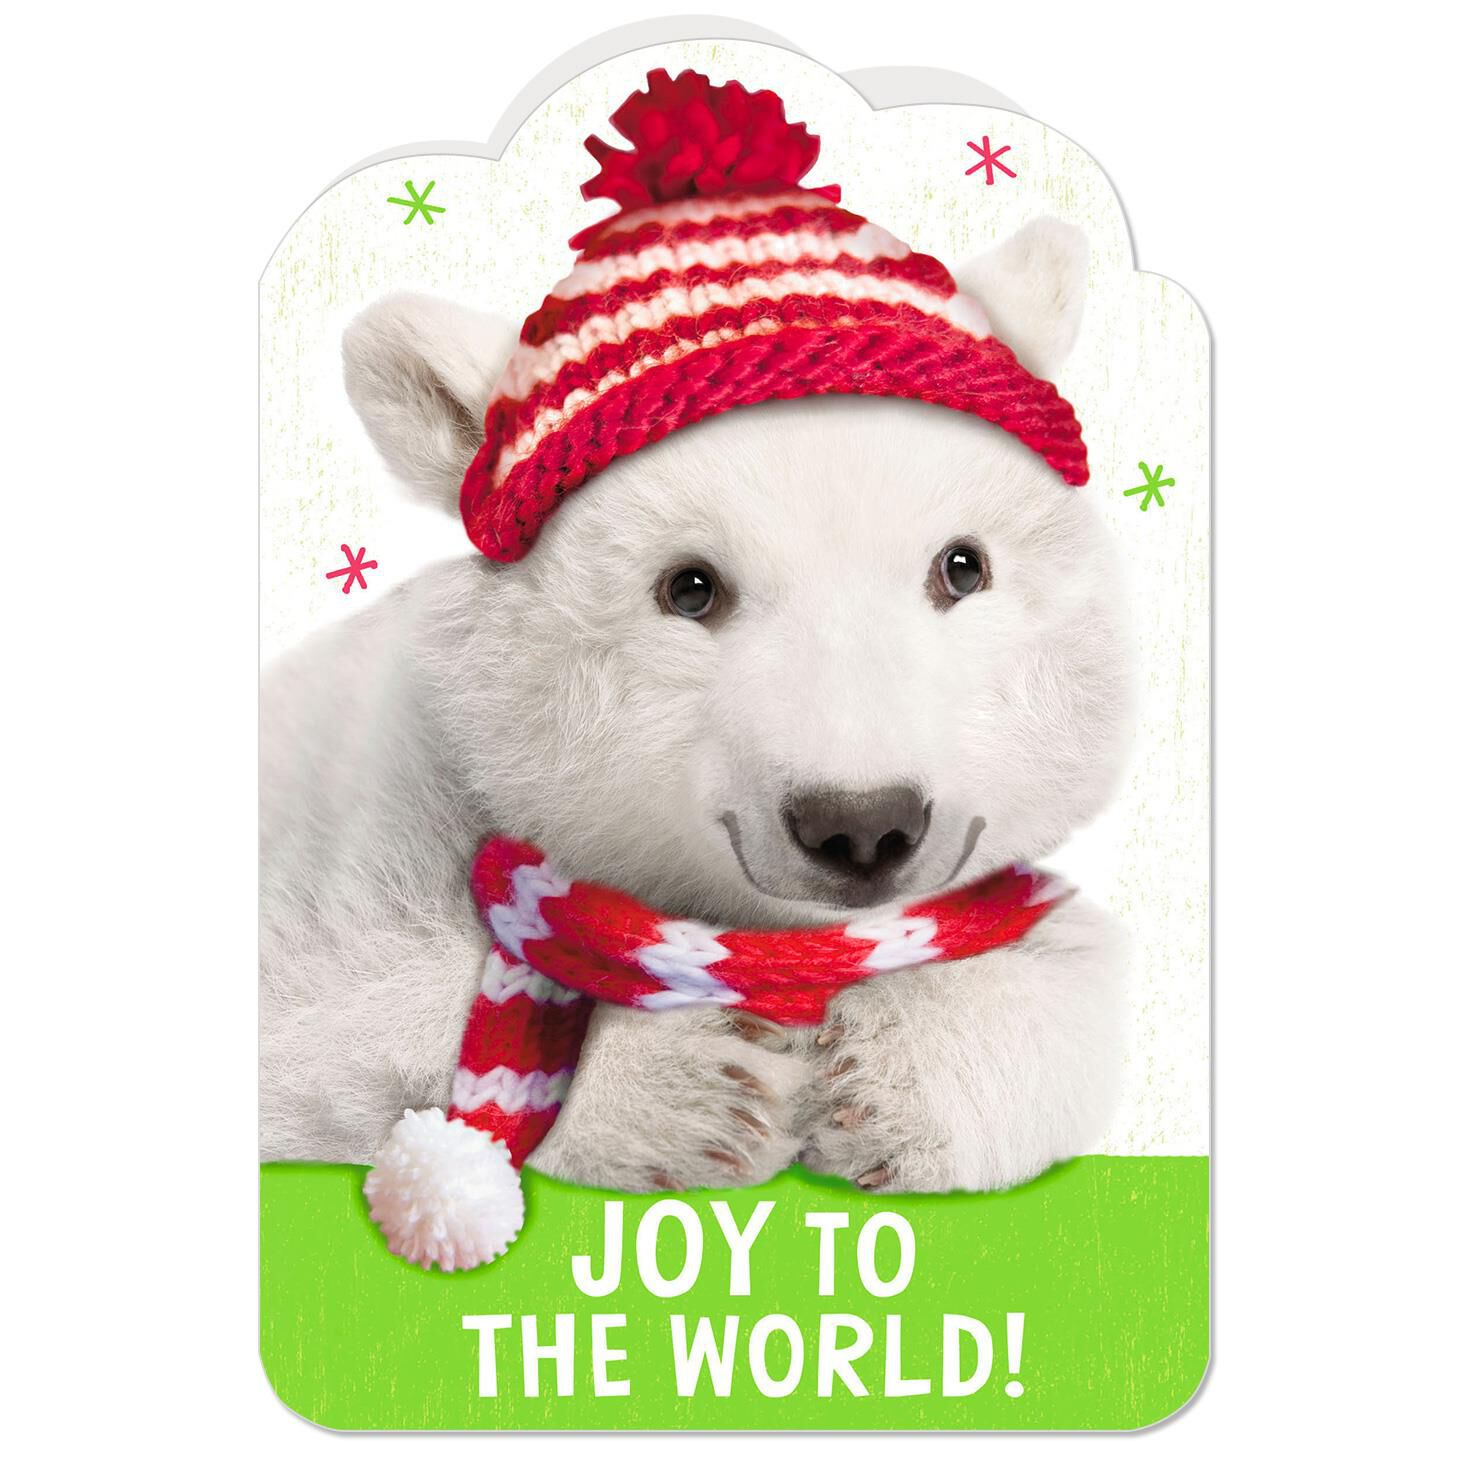 Joyful Polar Bear Christmas Card Greeting Cards Hallmark